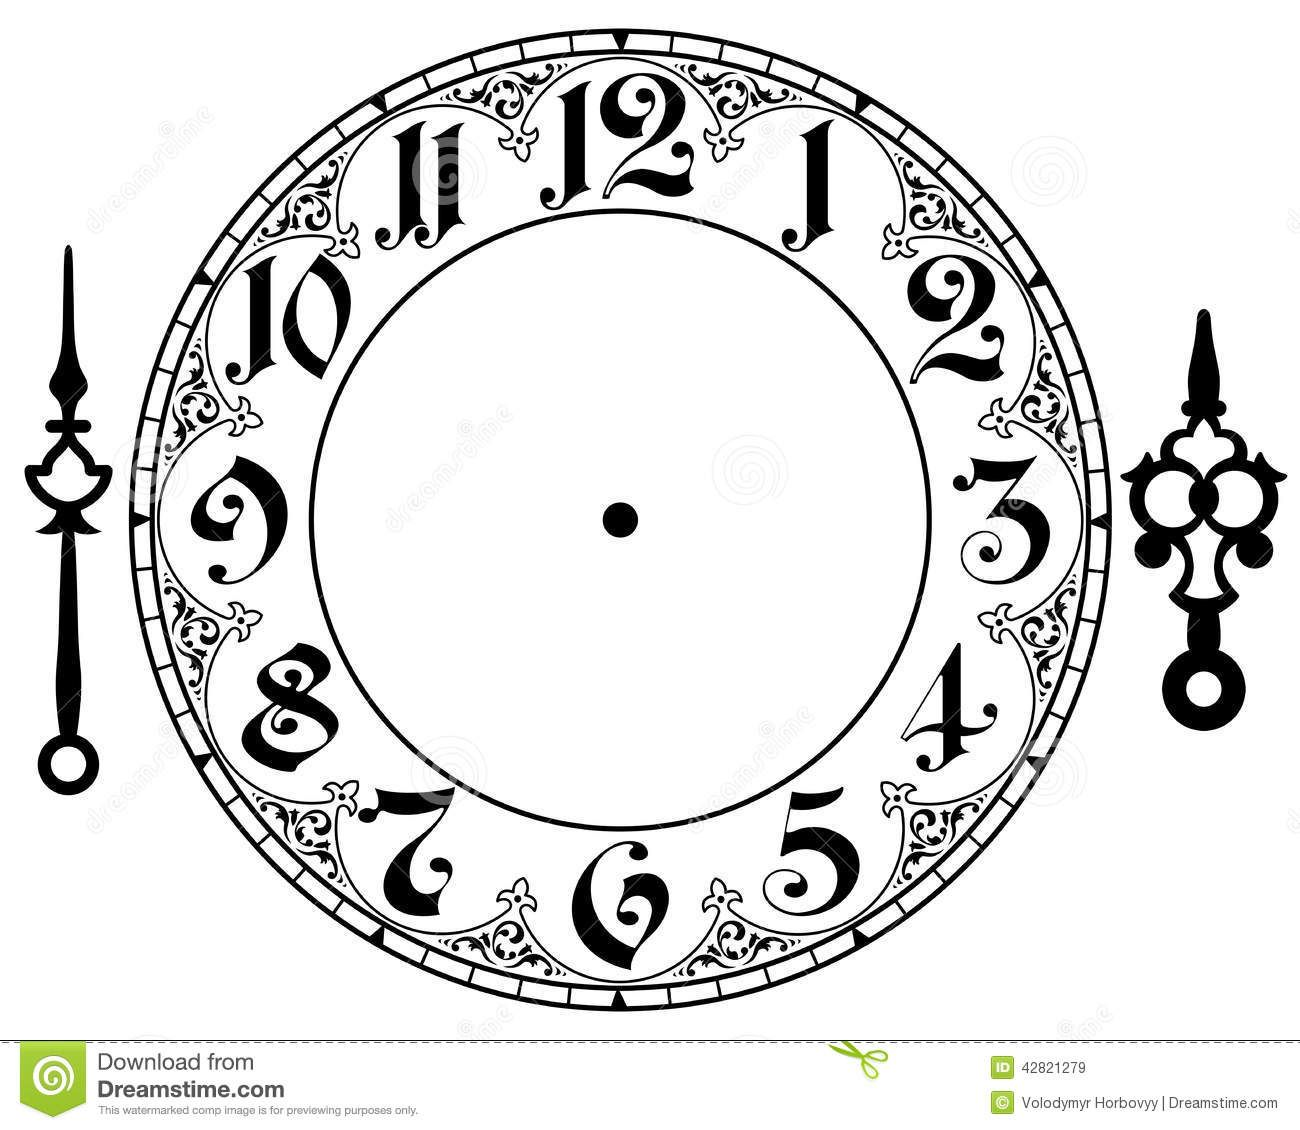 Clock Face Printable With Birds  Printables  Transfers